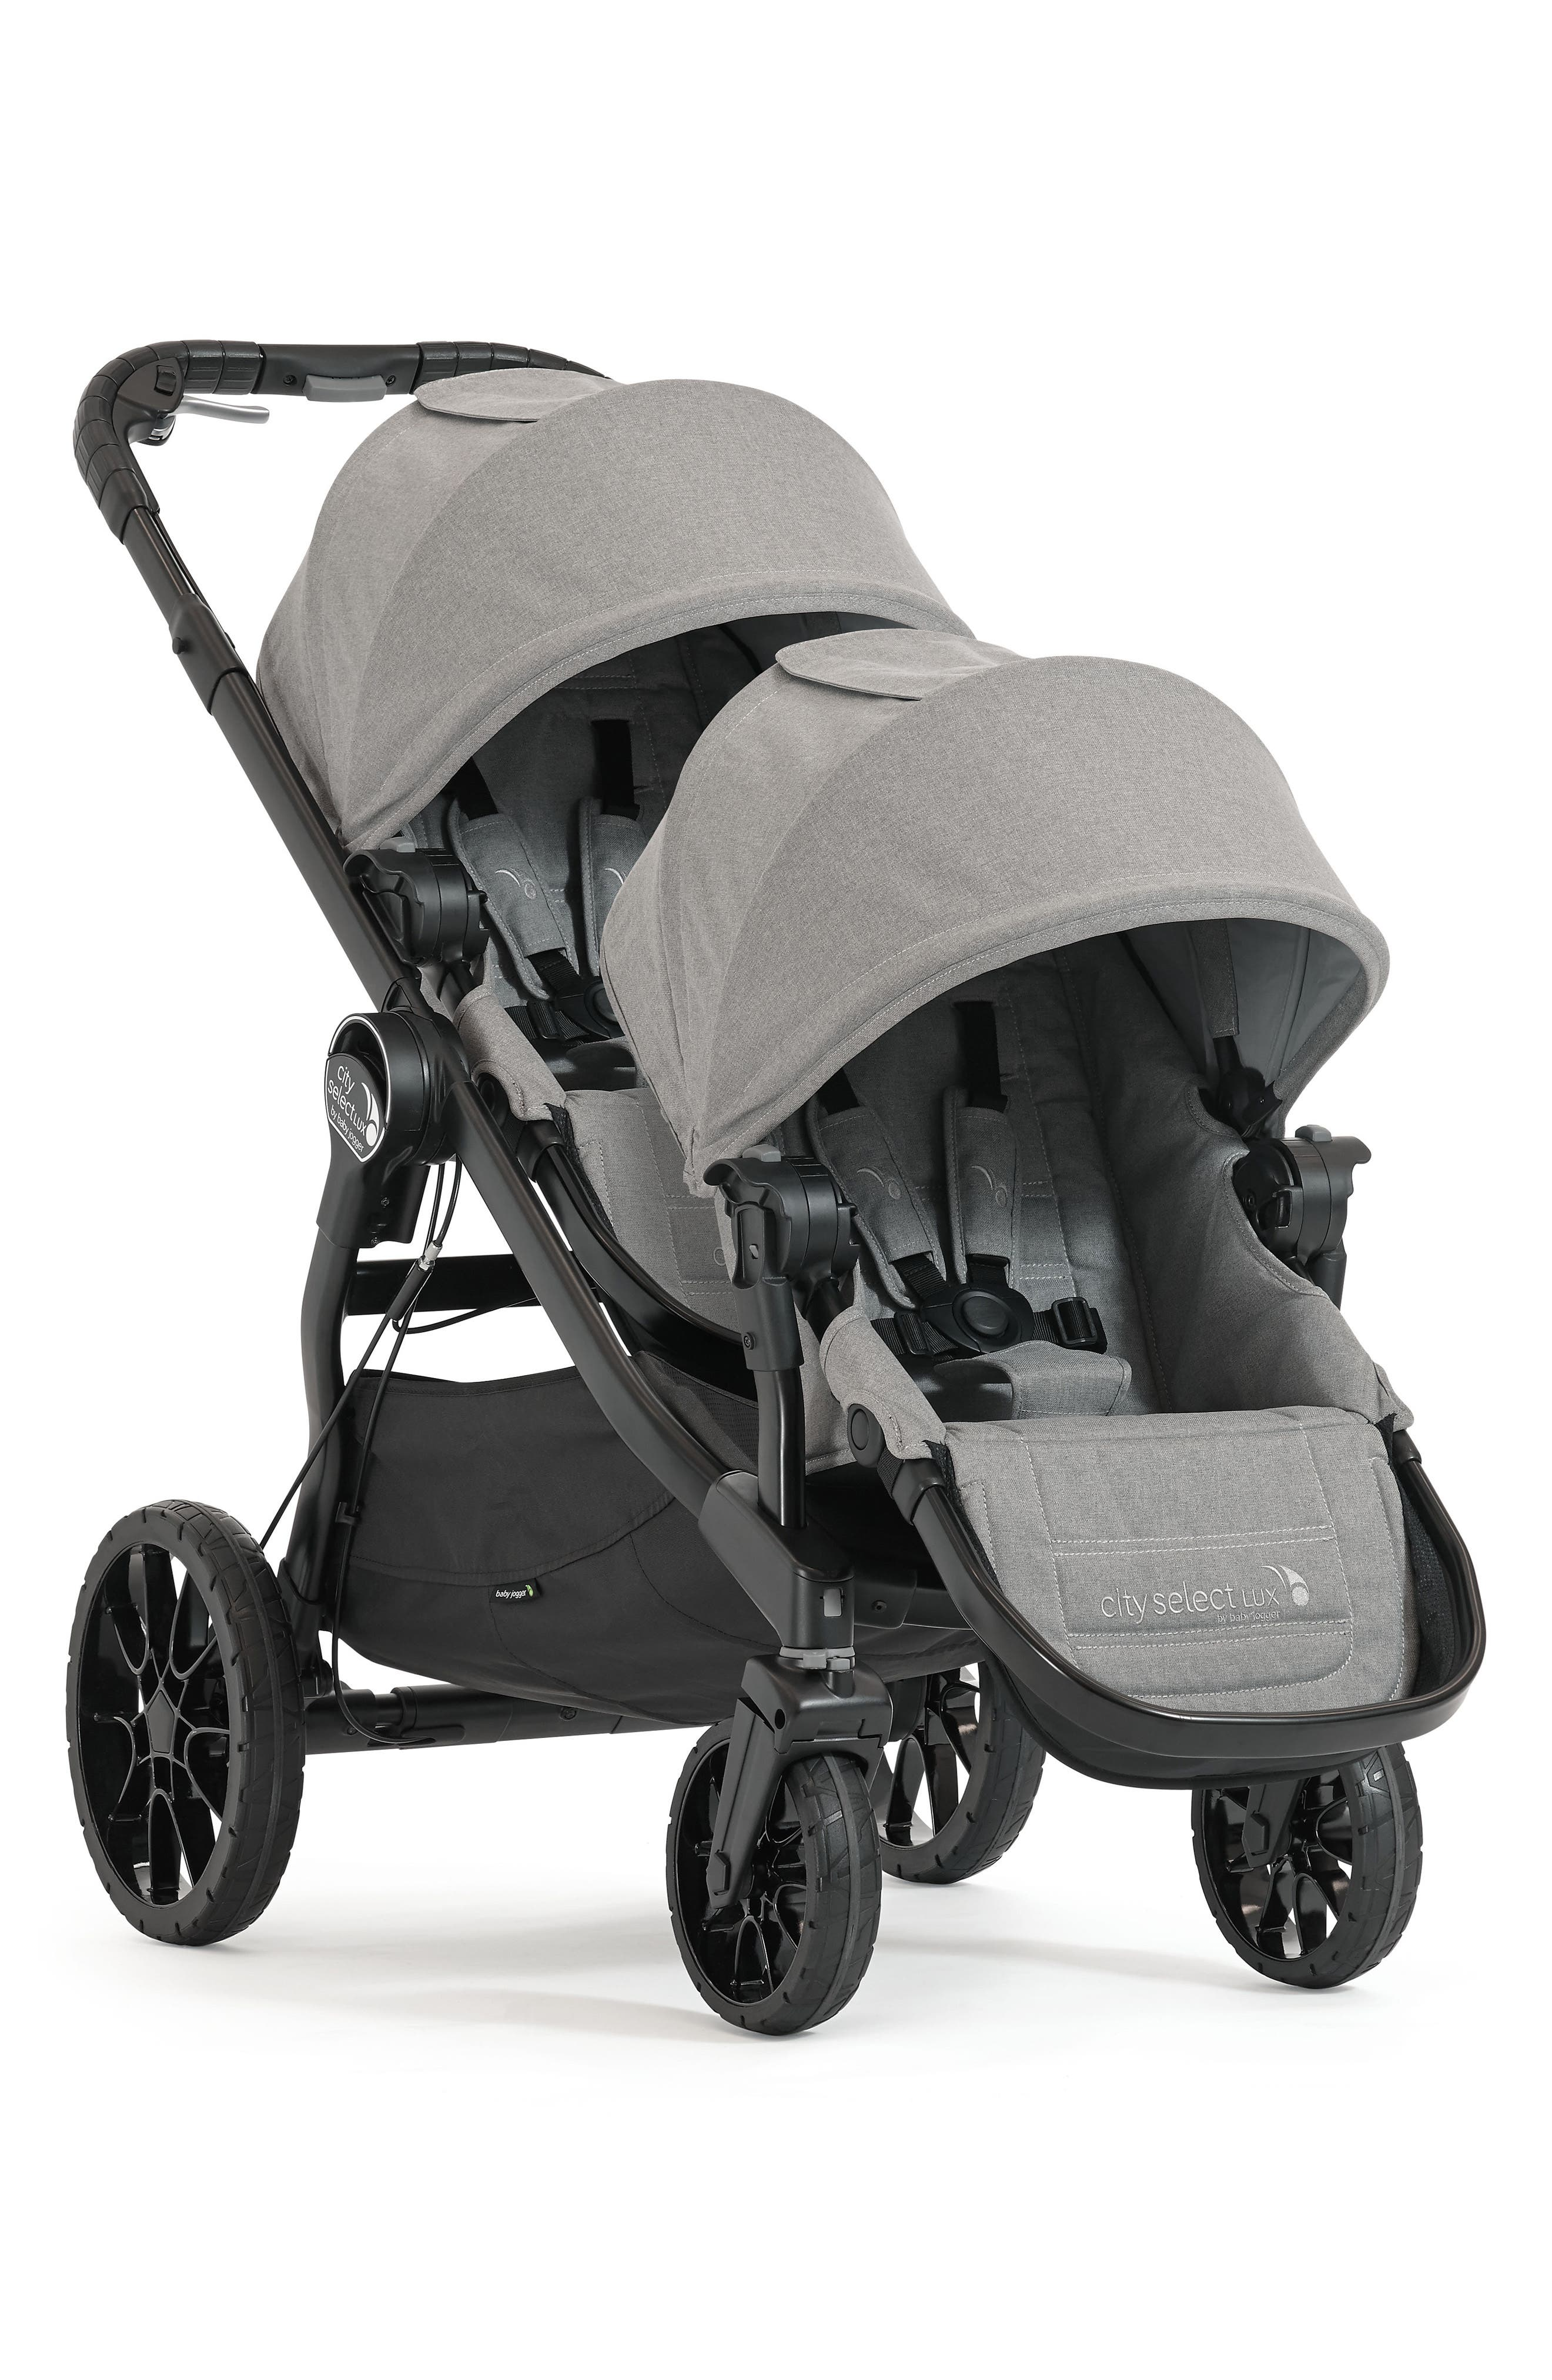 Main Image - Baby Jogger City Select® LUX Stroller with Second Seat